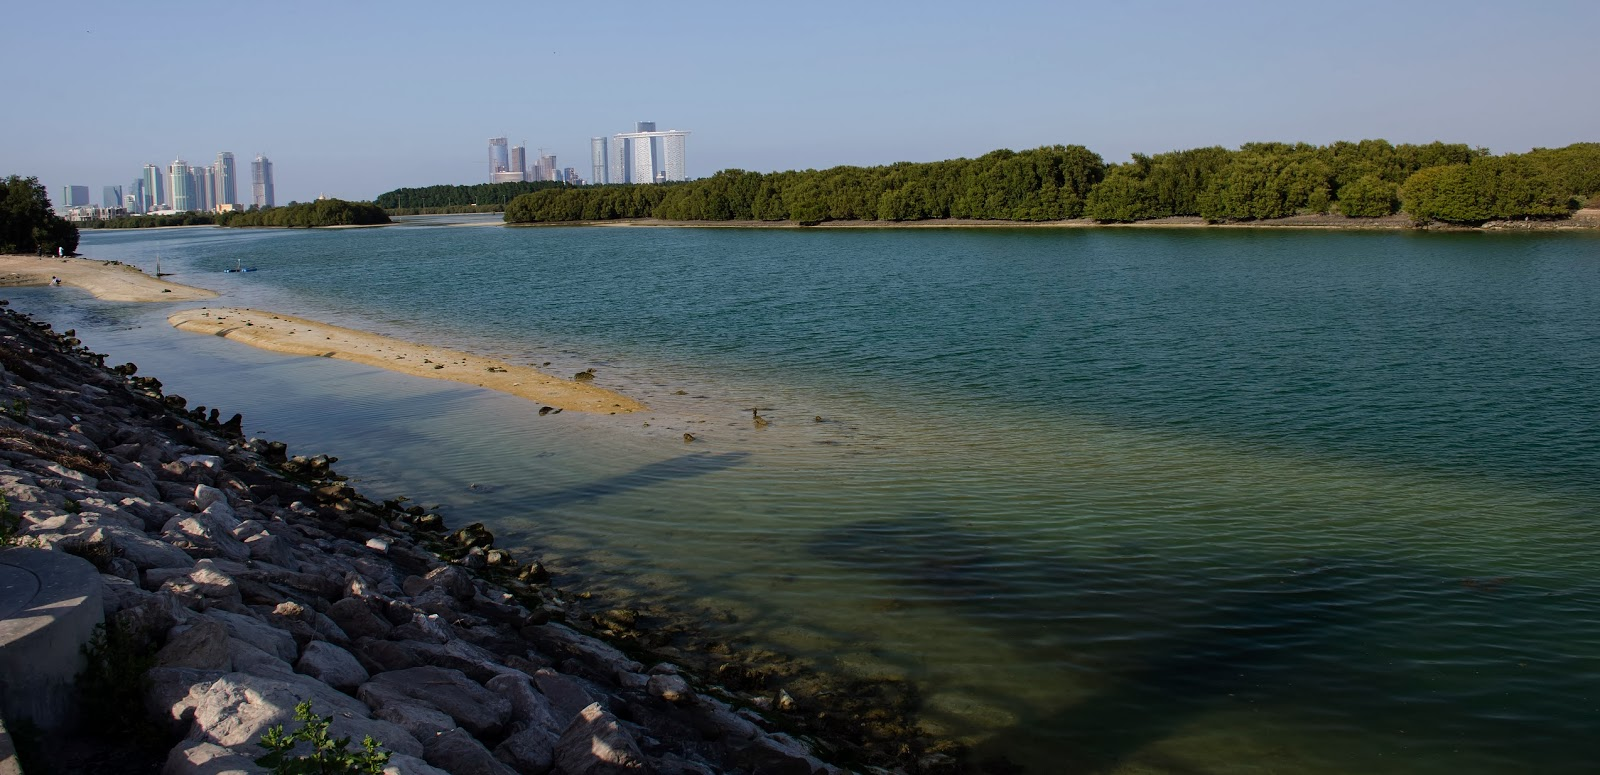 Abu Dhabi Mangroves and Reem Island Skyline